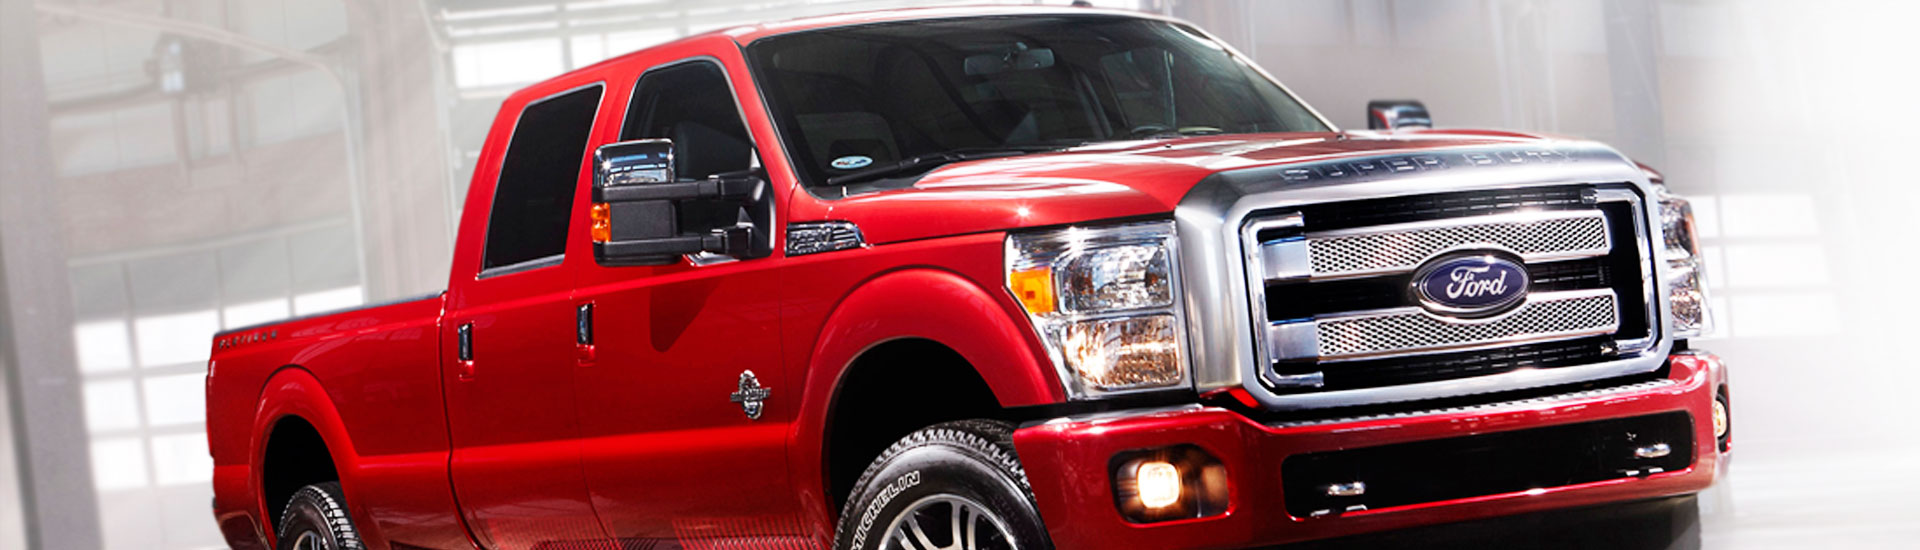 Ford F-350 Window Tint